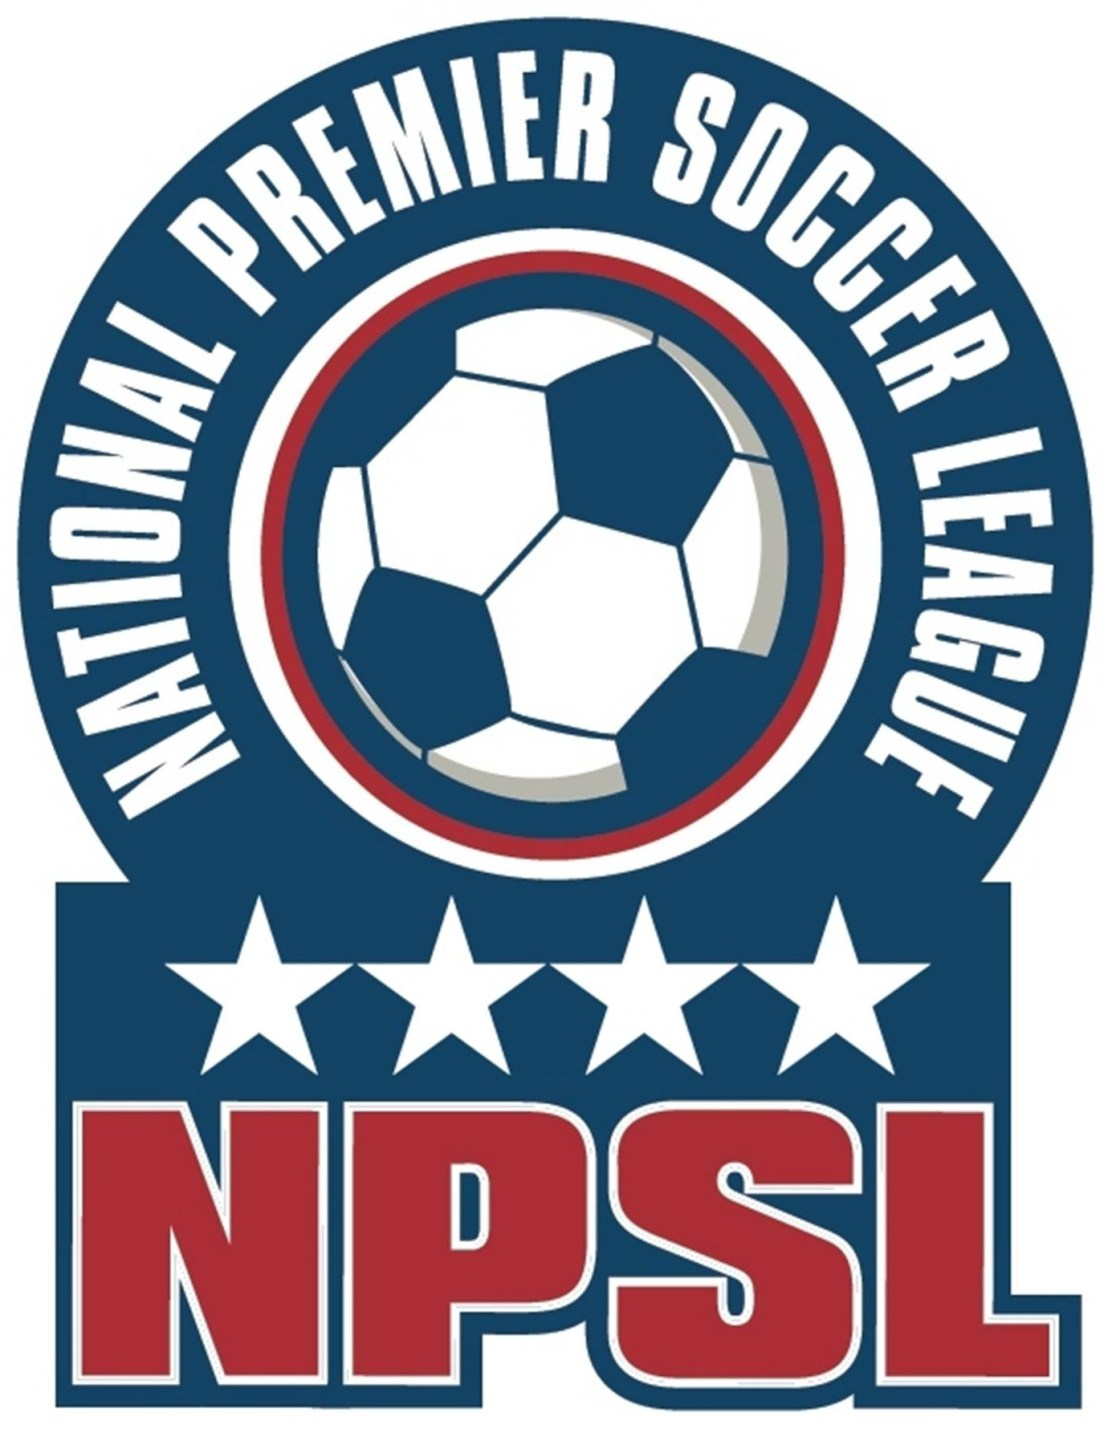 NPSL benefits adult players of many experience levels